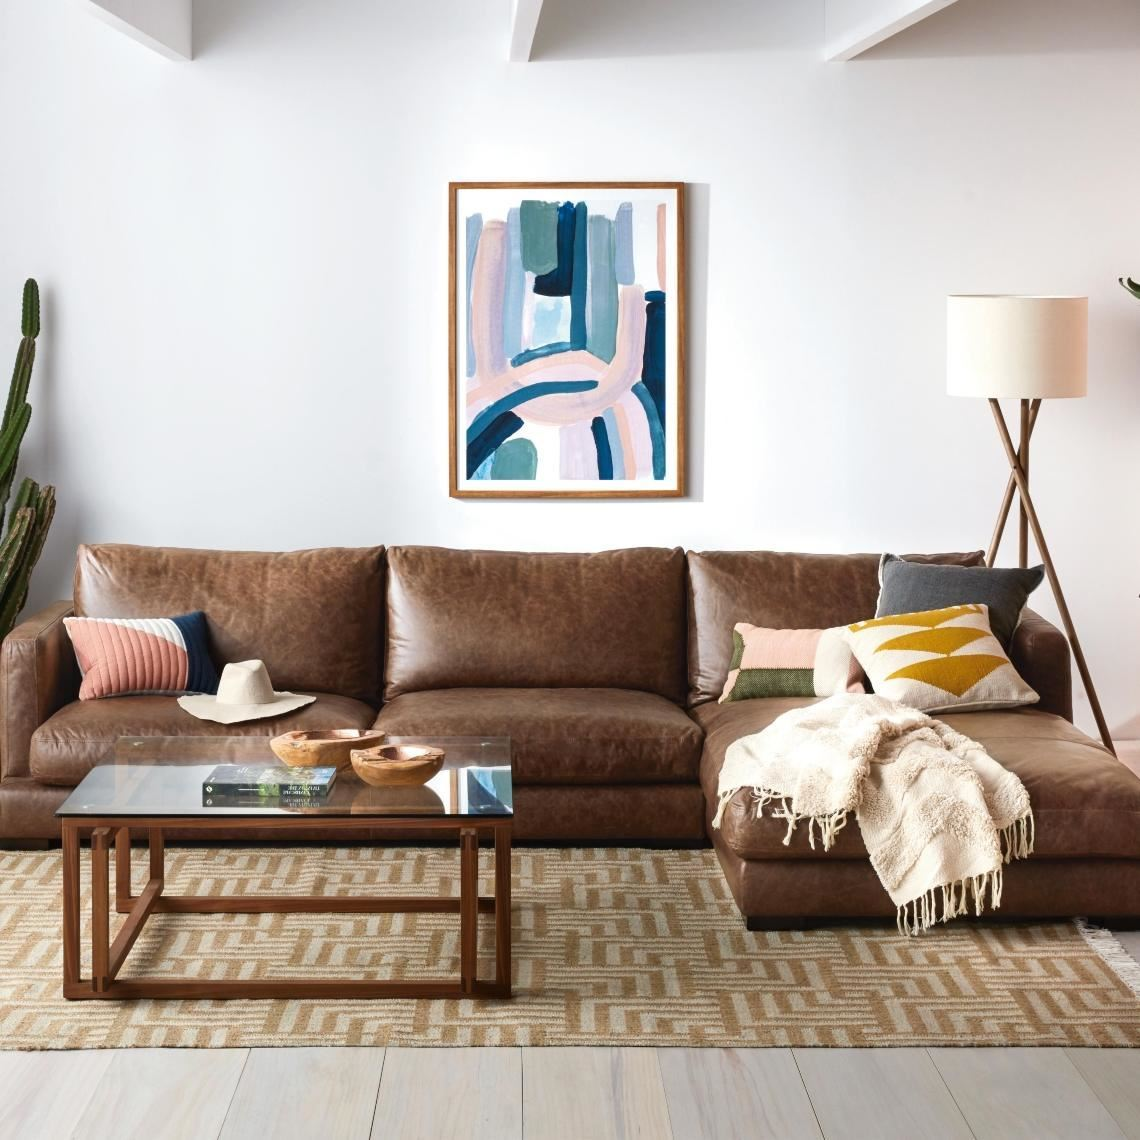 Hamilton 3 Seat Leather Modular Sofa W Right Chaise Size W 330cm X D 211cm X H 86cm In Caramel Leather Foam Fibre Freedom By Freedom Style Sourcebook